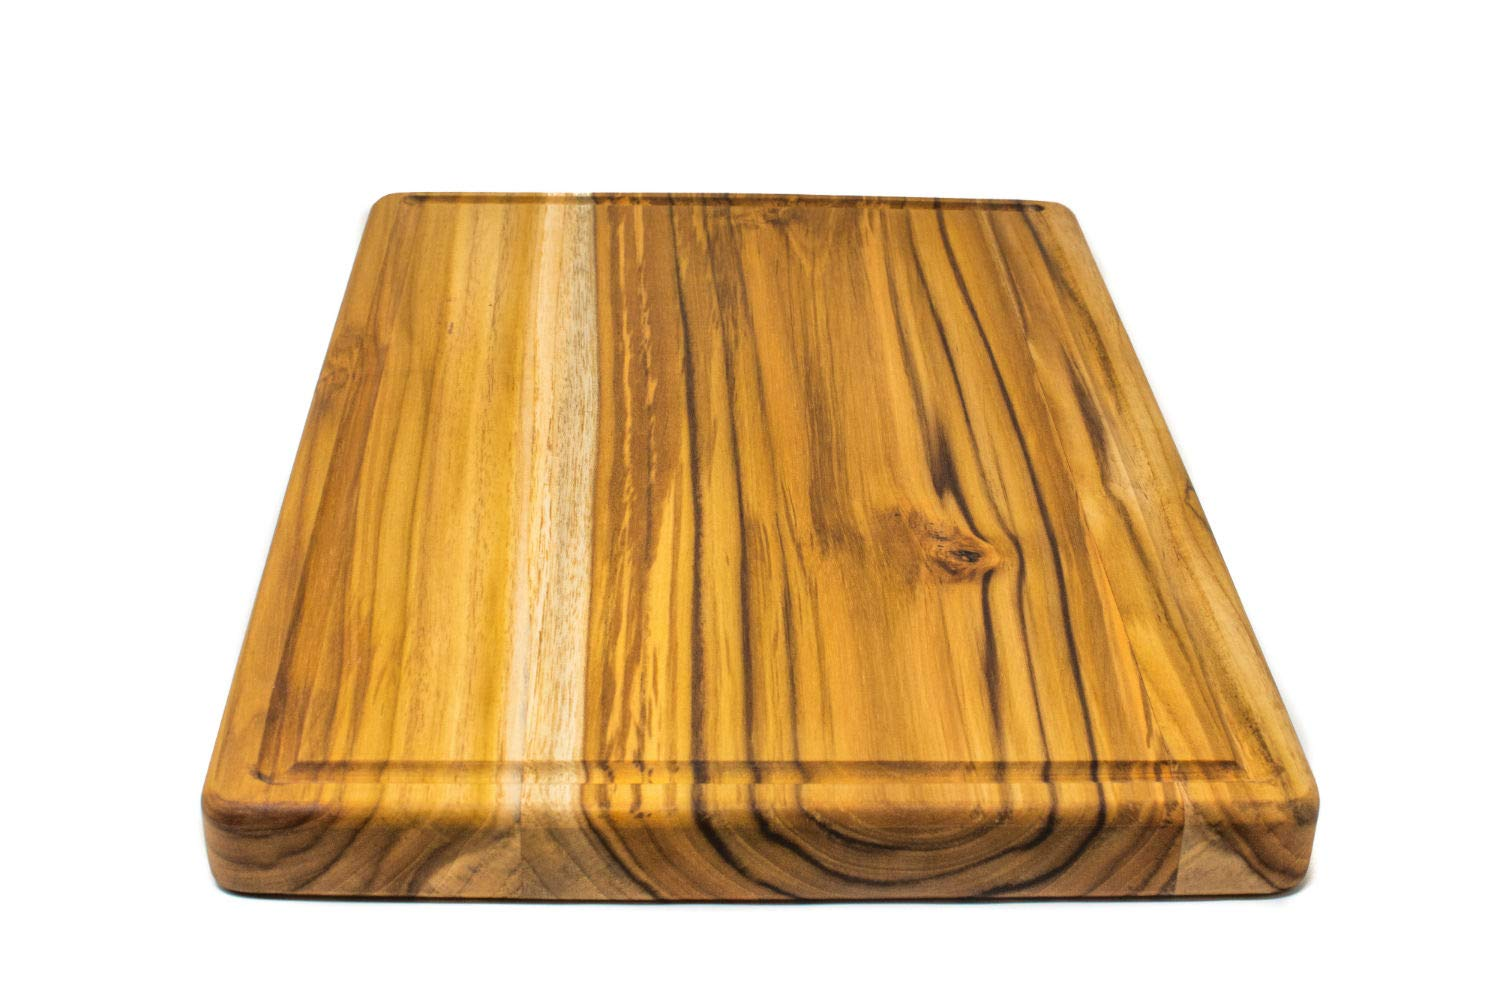 Large Reversible Teak Wood Cutting Board with Juice Groove - Hardwood Chopping Block and Serving Tray (17x11x1 Inches) by Do it wiser (Image #7)